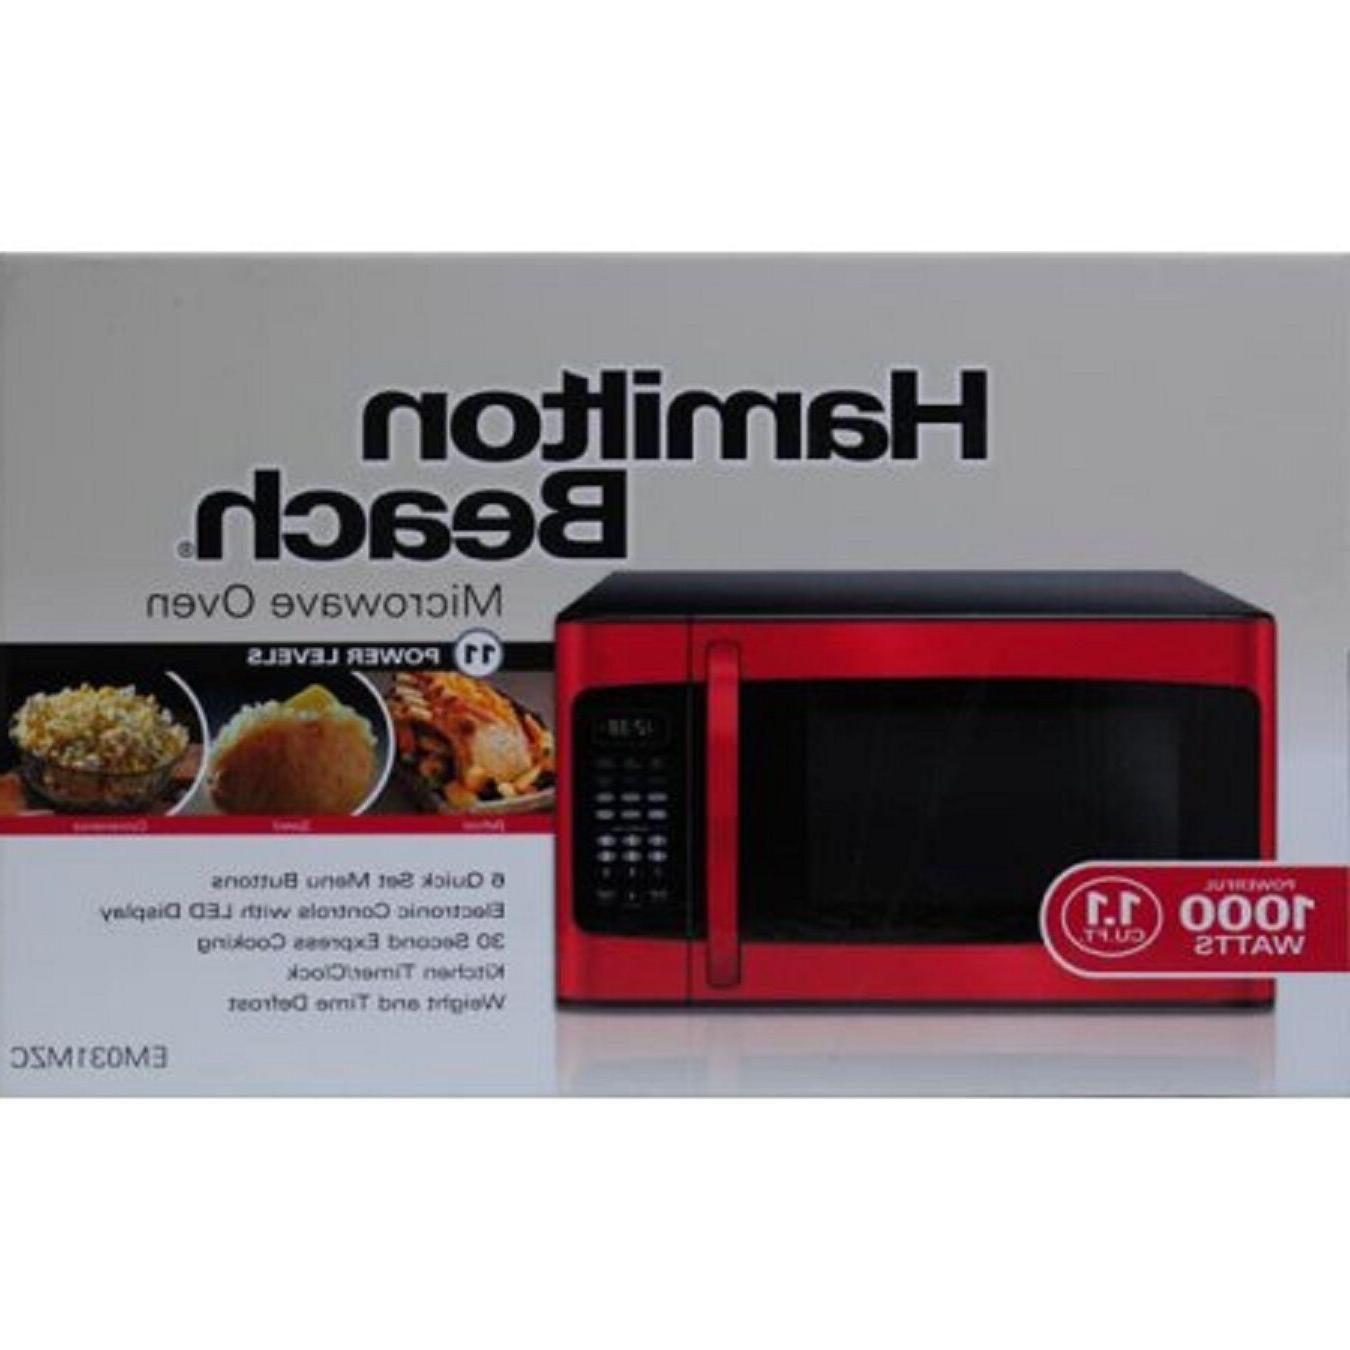 Hamilton 1.1 ft Microwave, Red